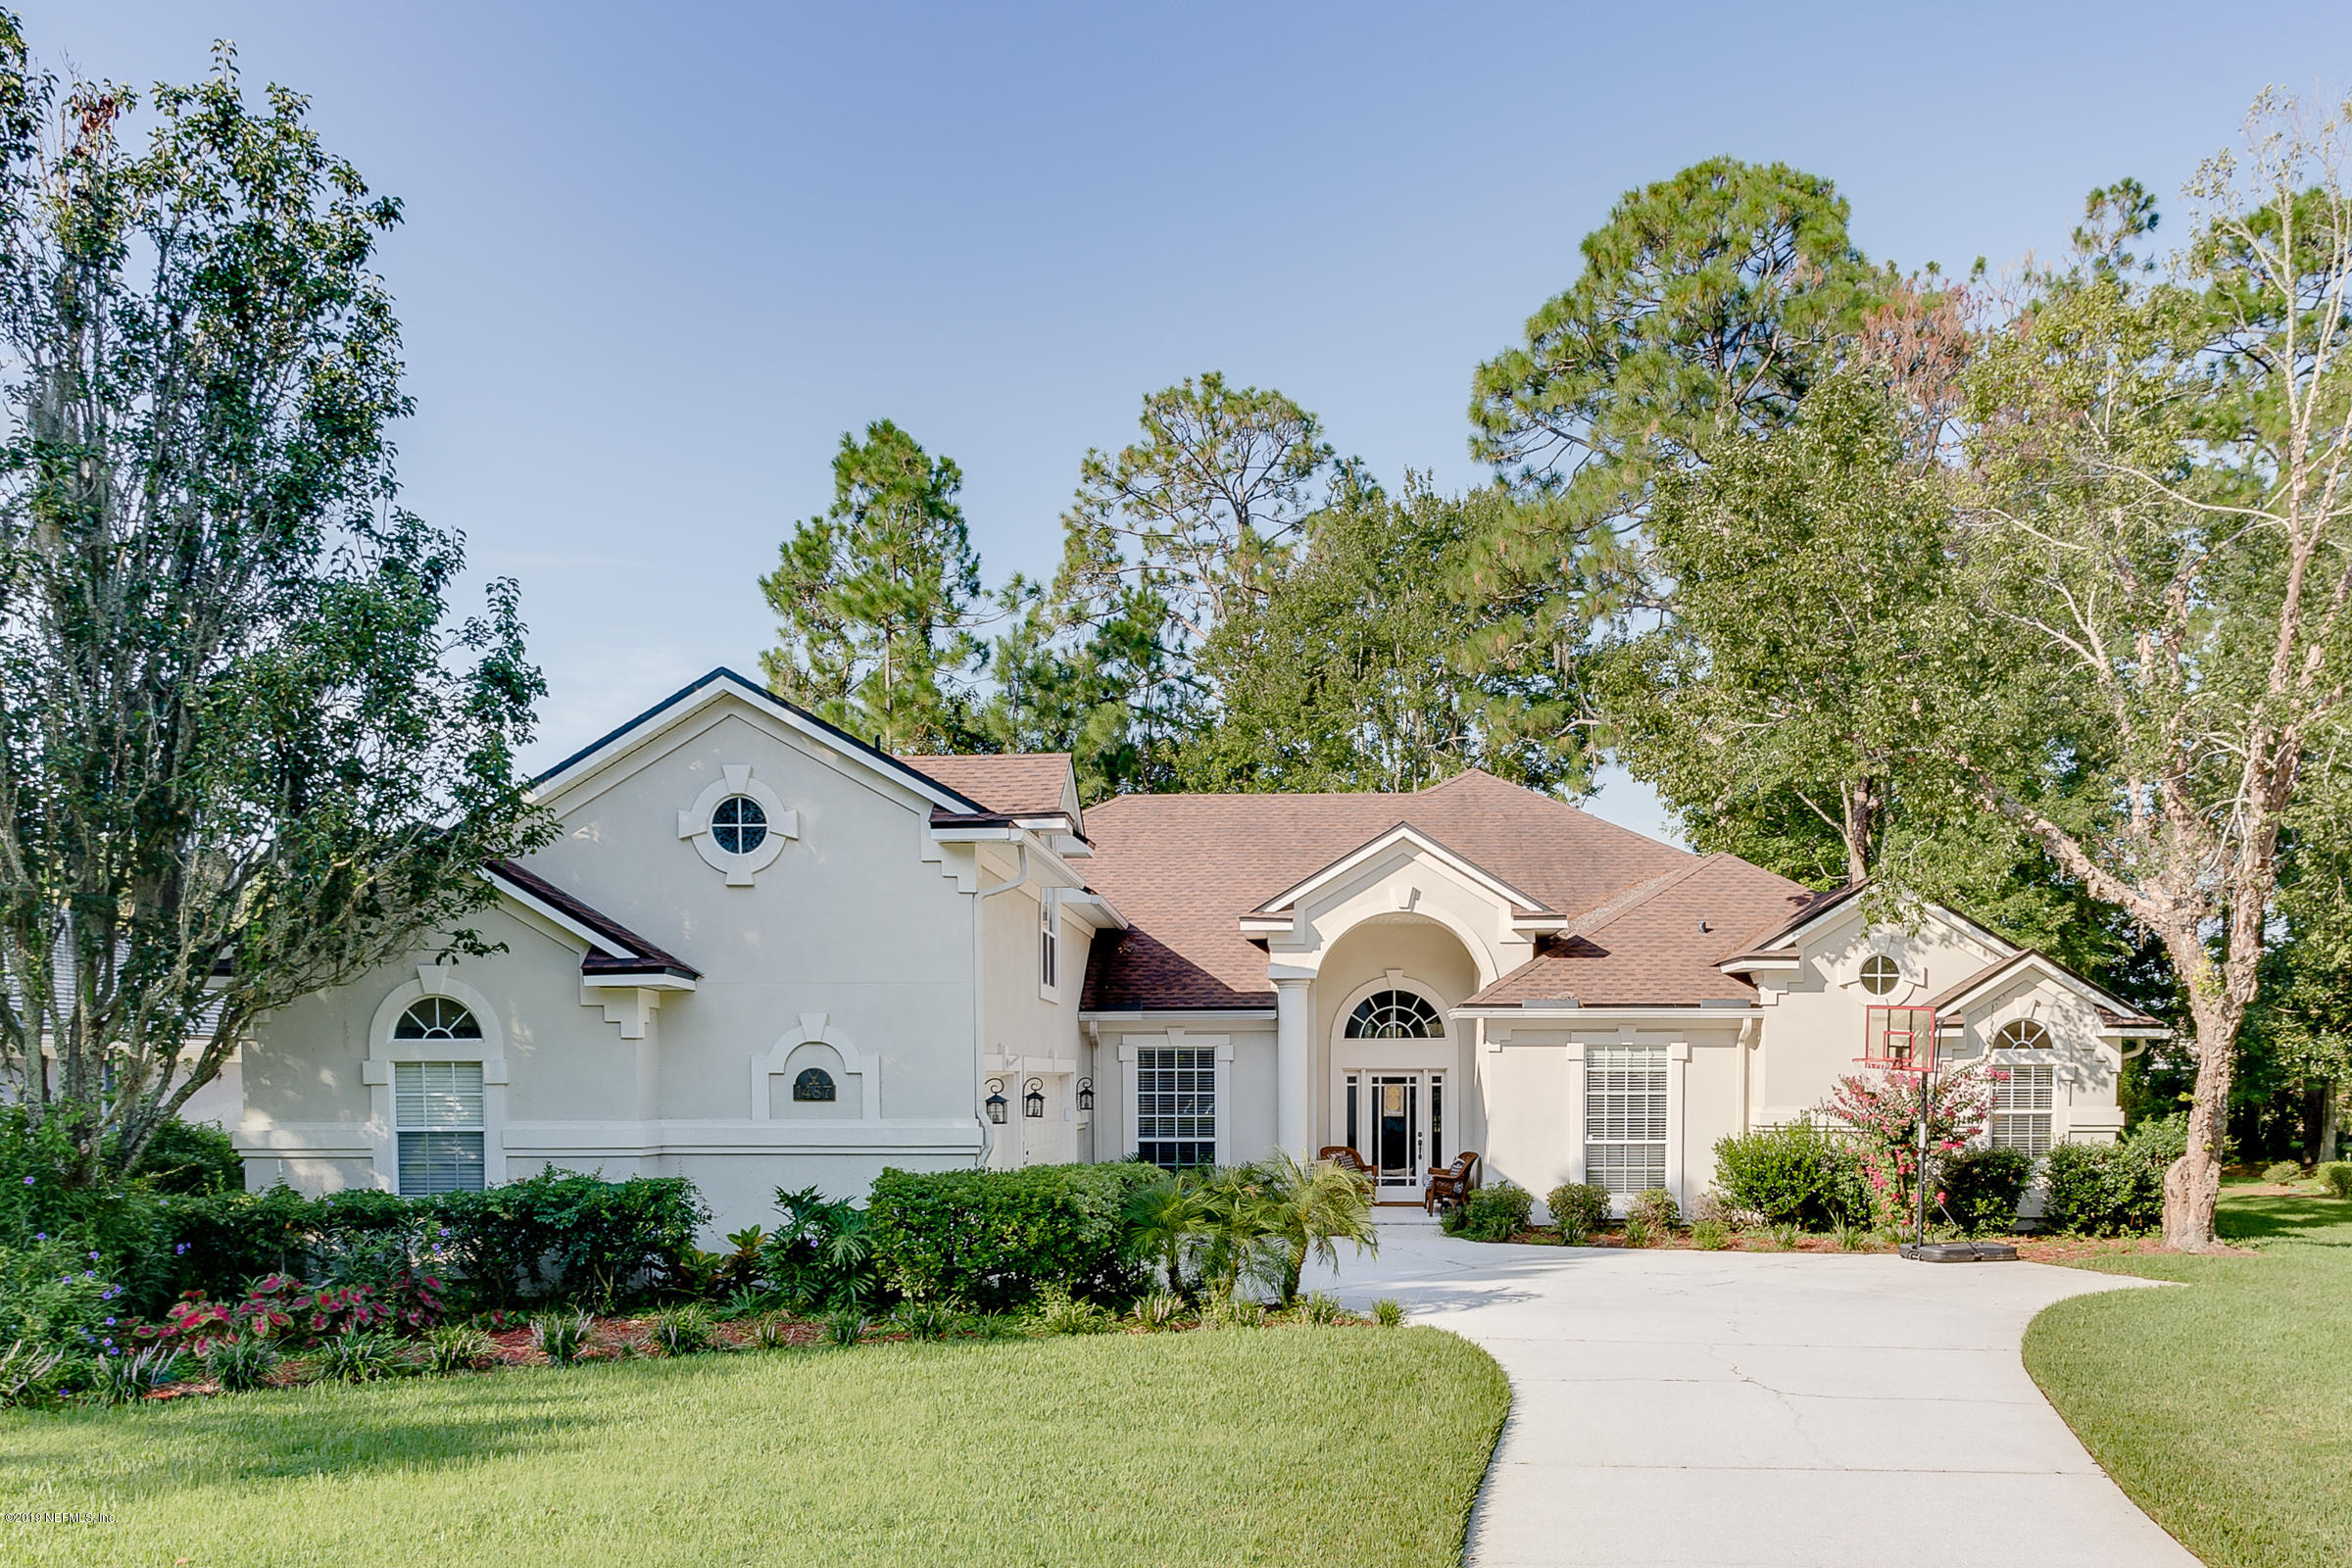 1487 COURSE VIEW, FLEMING ISLAND, FLORIDA 32003, 5 Bedrooms Bedrooms, ,3 BathroomsBathrooms,Residential - single family,For sale,COURSE VIEW,1011231